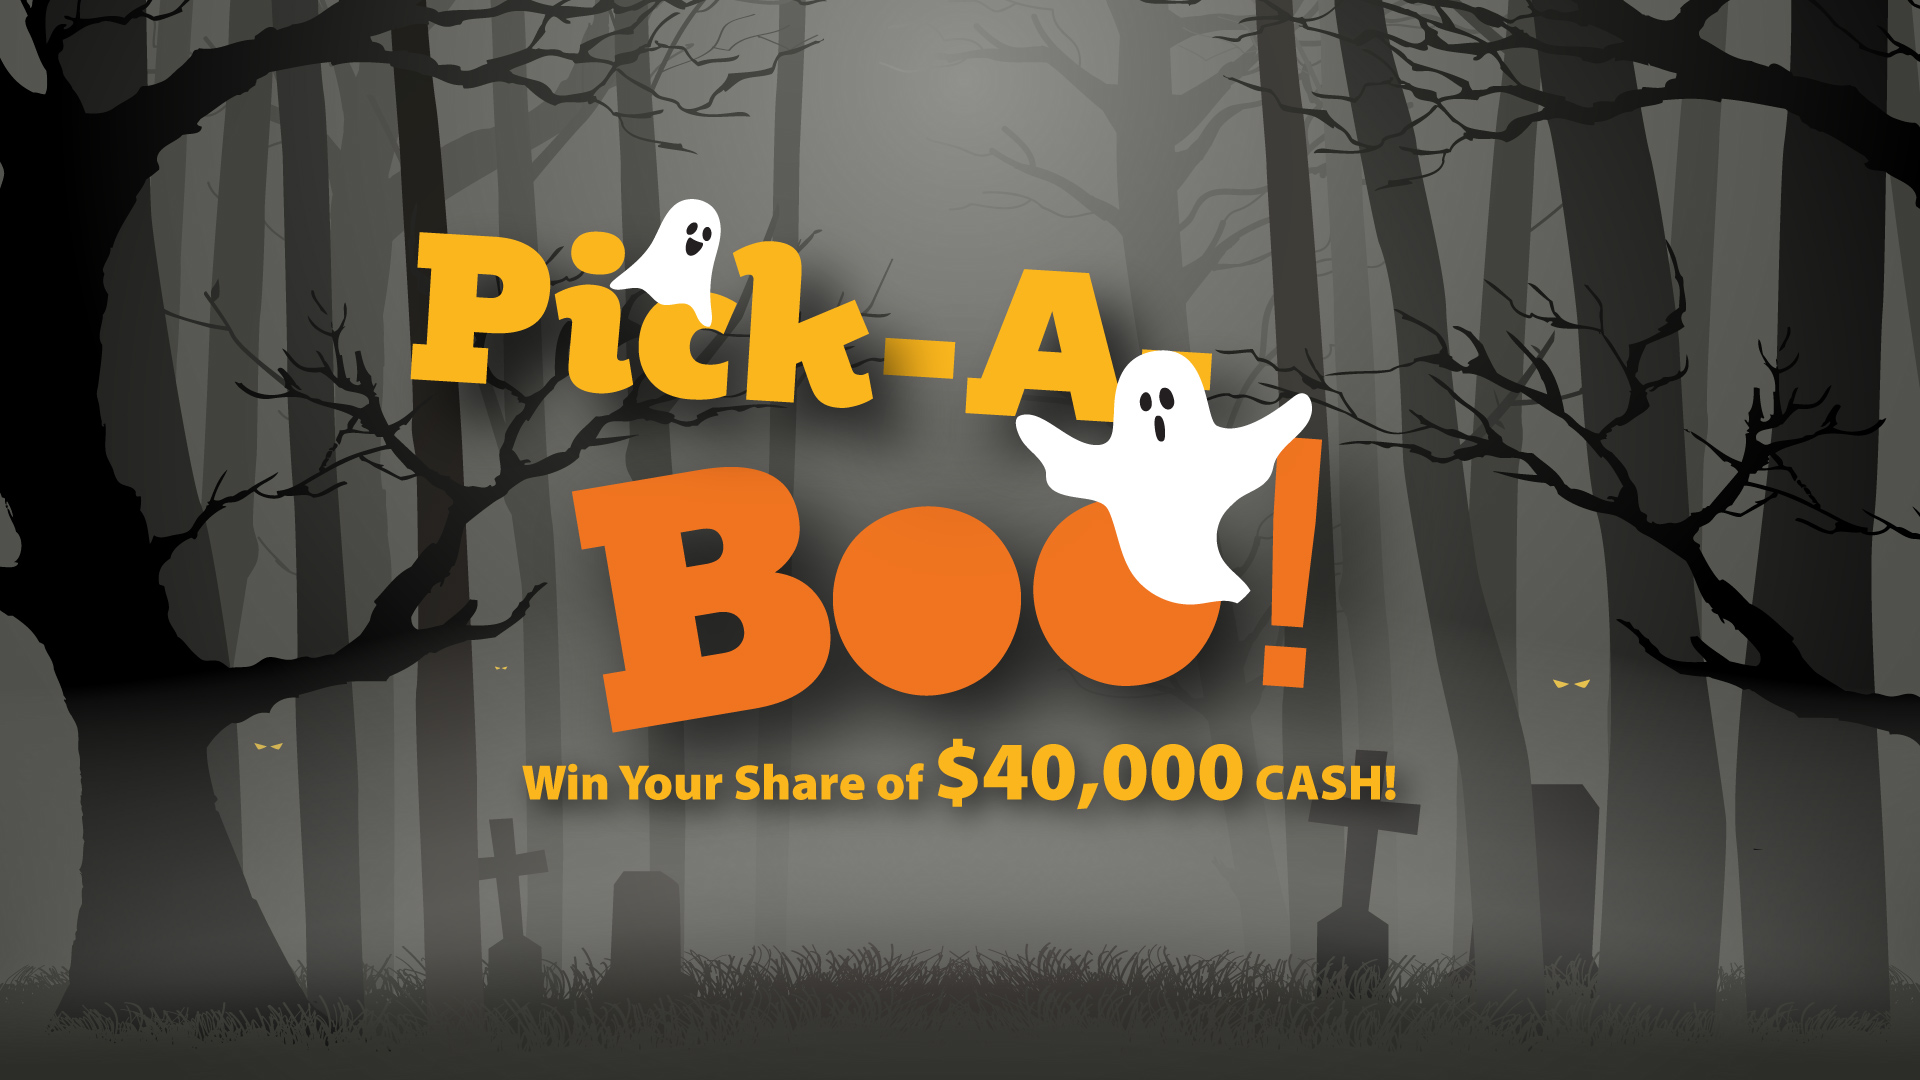 Pick A Boo Win Your Share Of $40,000 CASH!